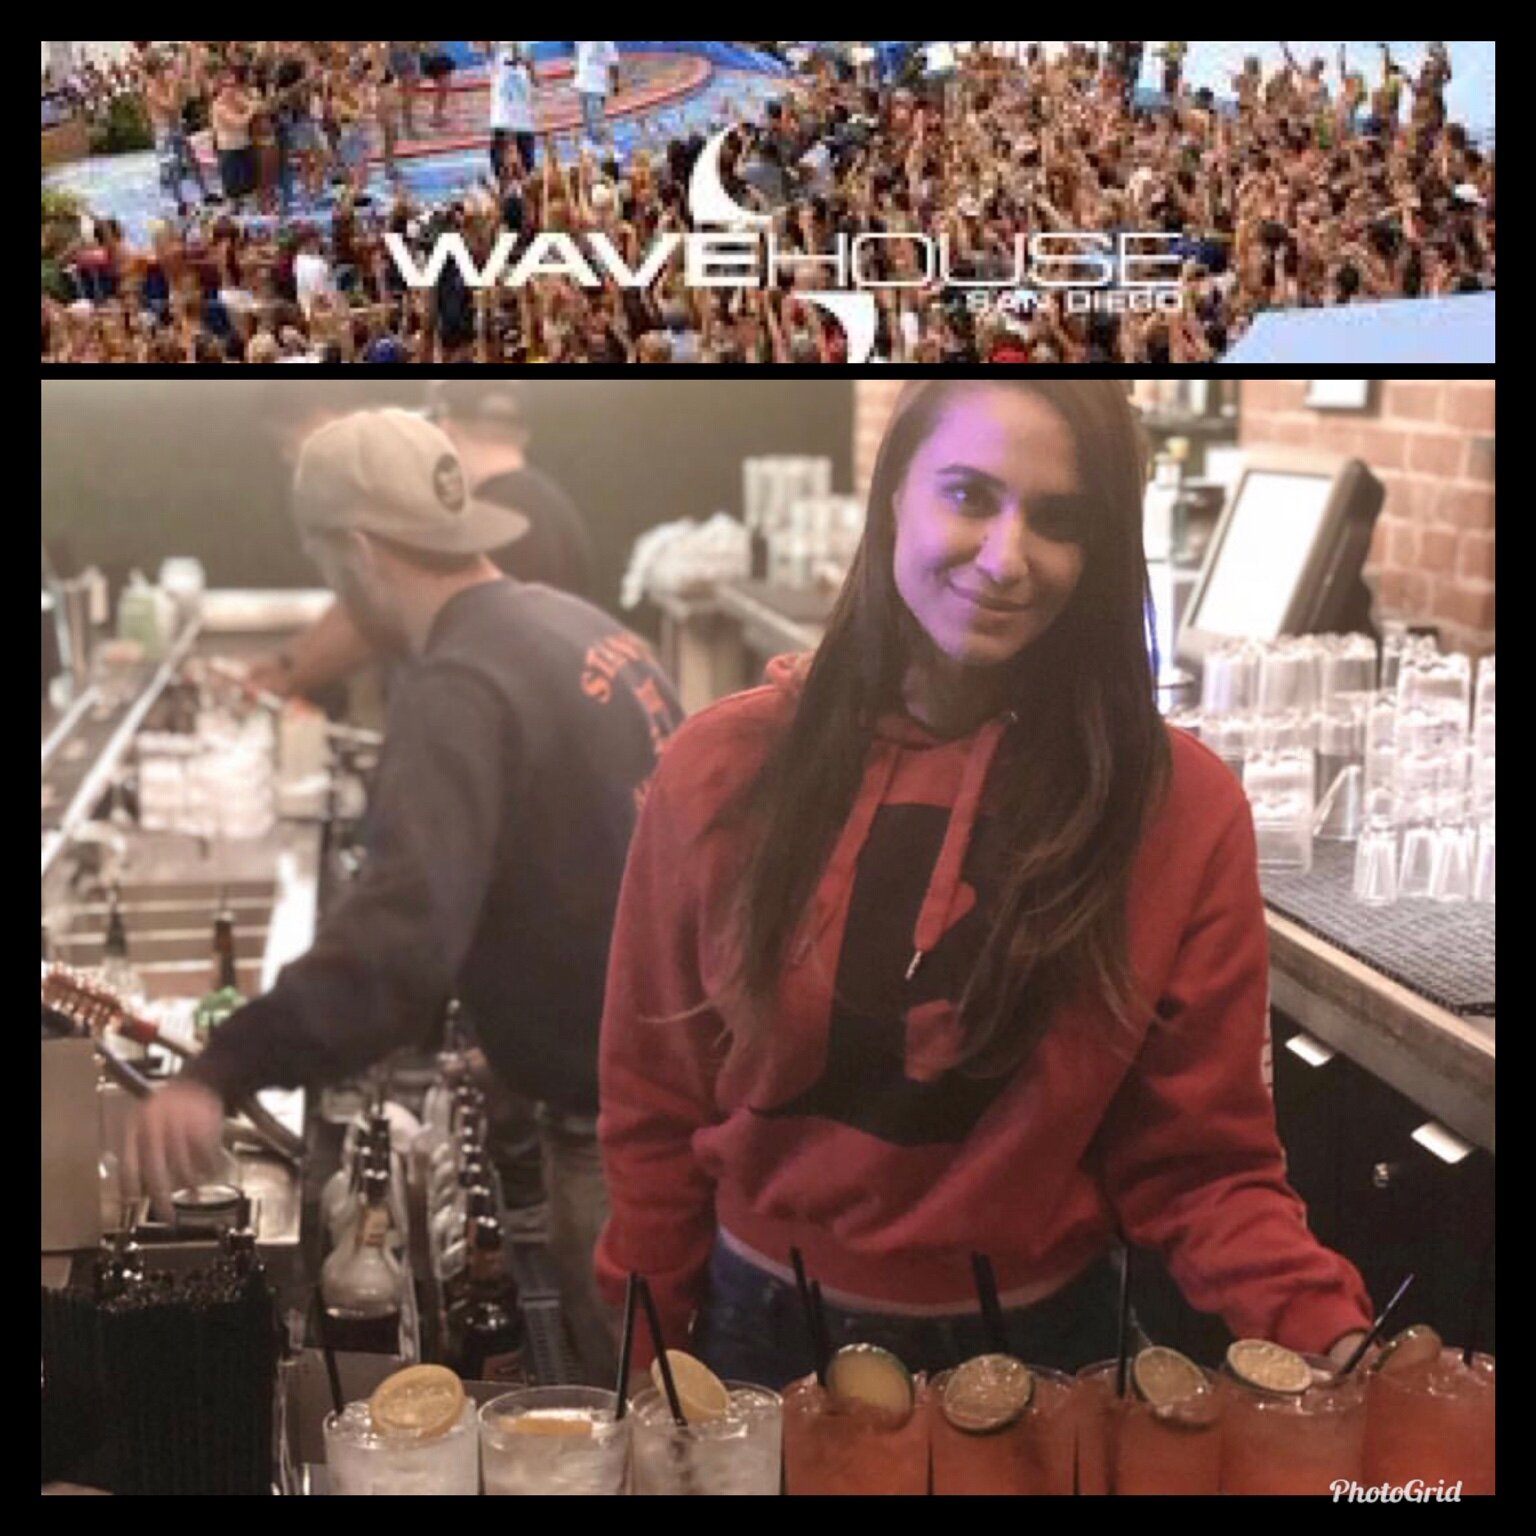 Wavehouse, Atomic and Archway Lounge. All from GBS bartender staffing.